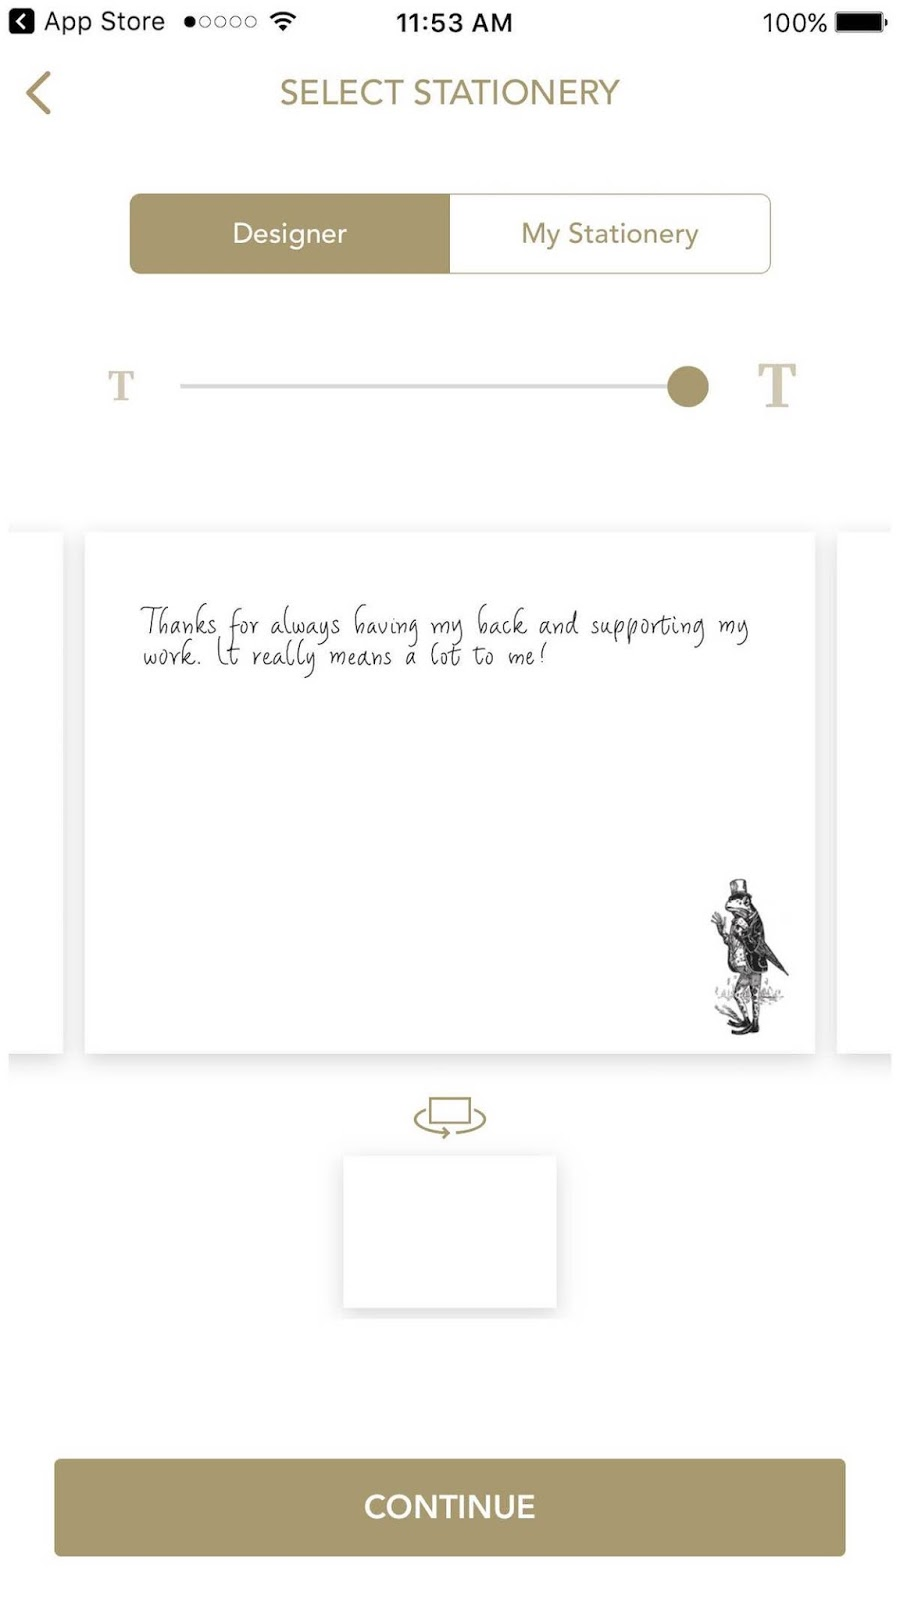 This is a screenshot of the second step to creating your own handwritten note, which includes picking the stationery you want to send the card on.